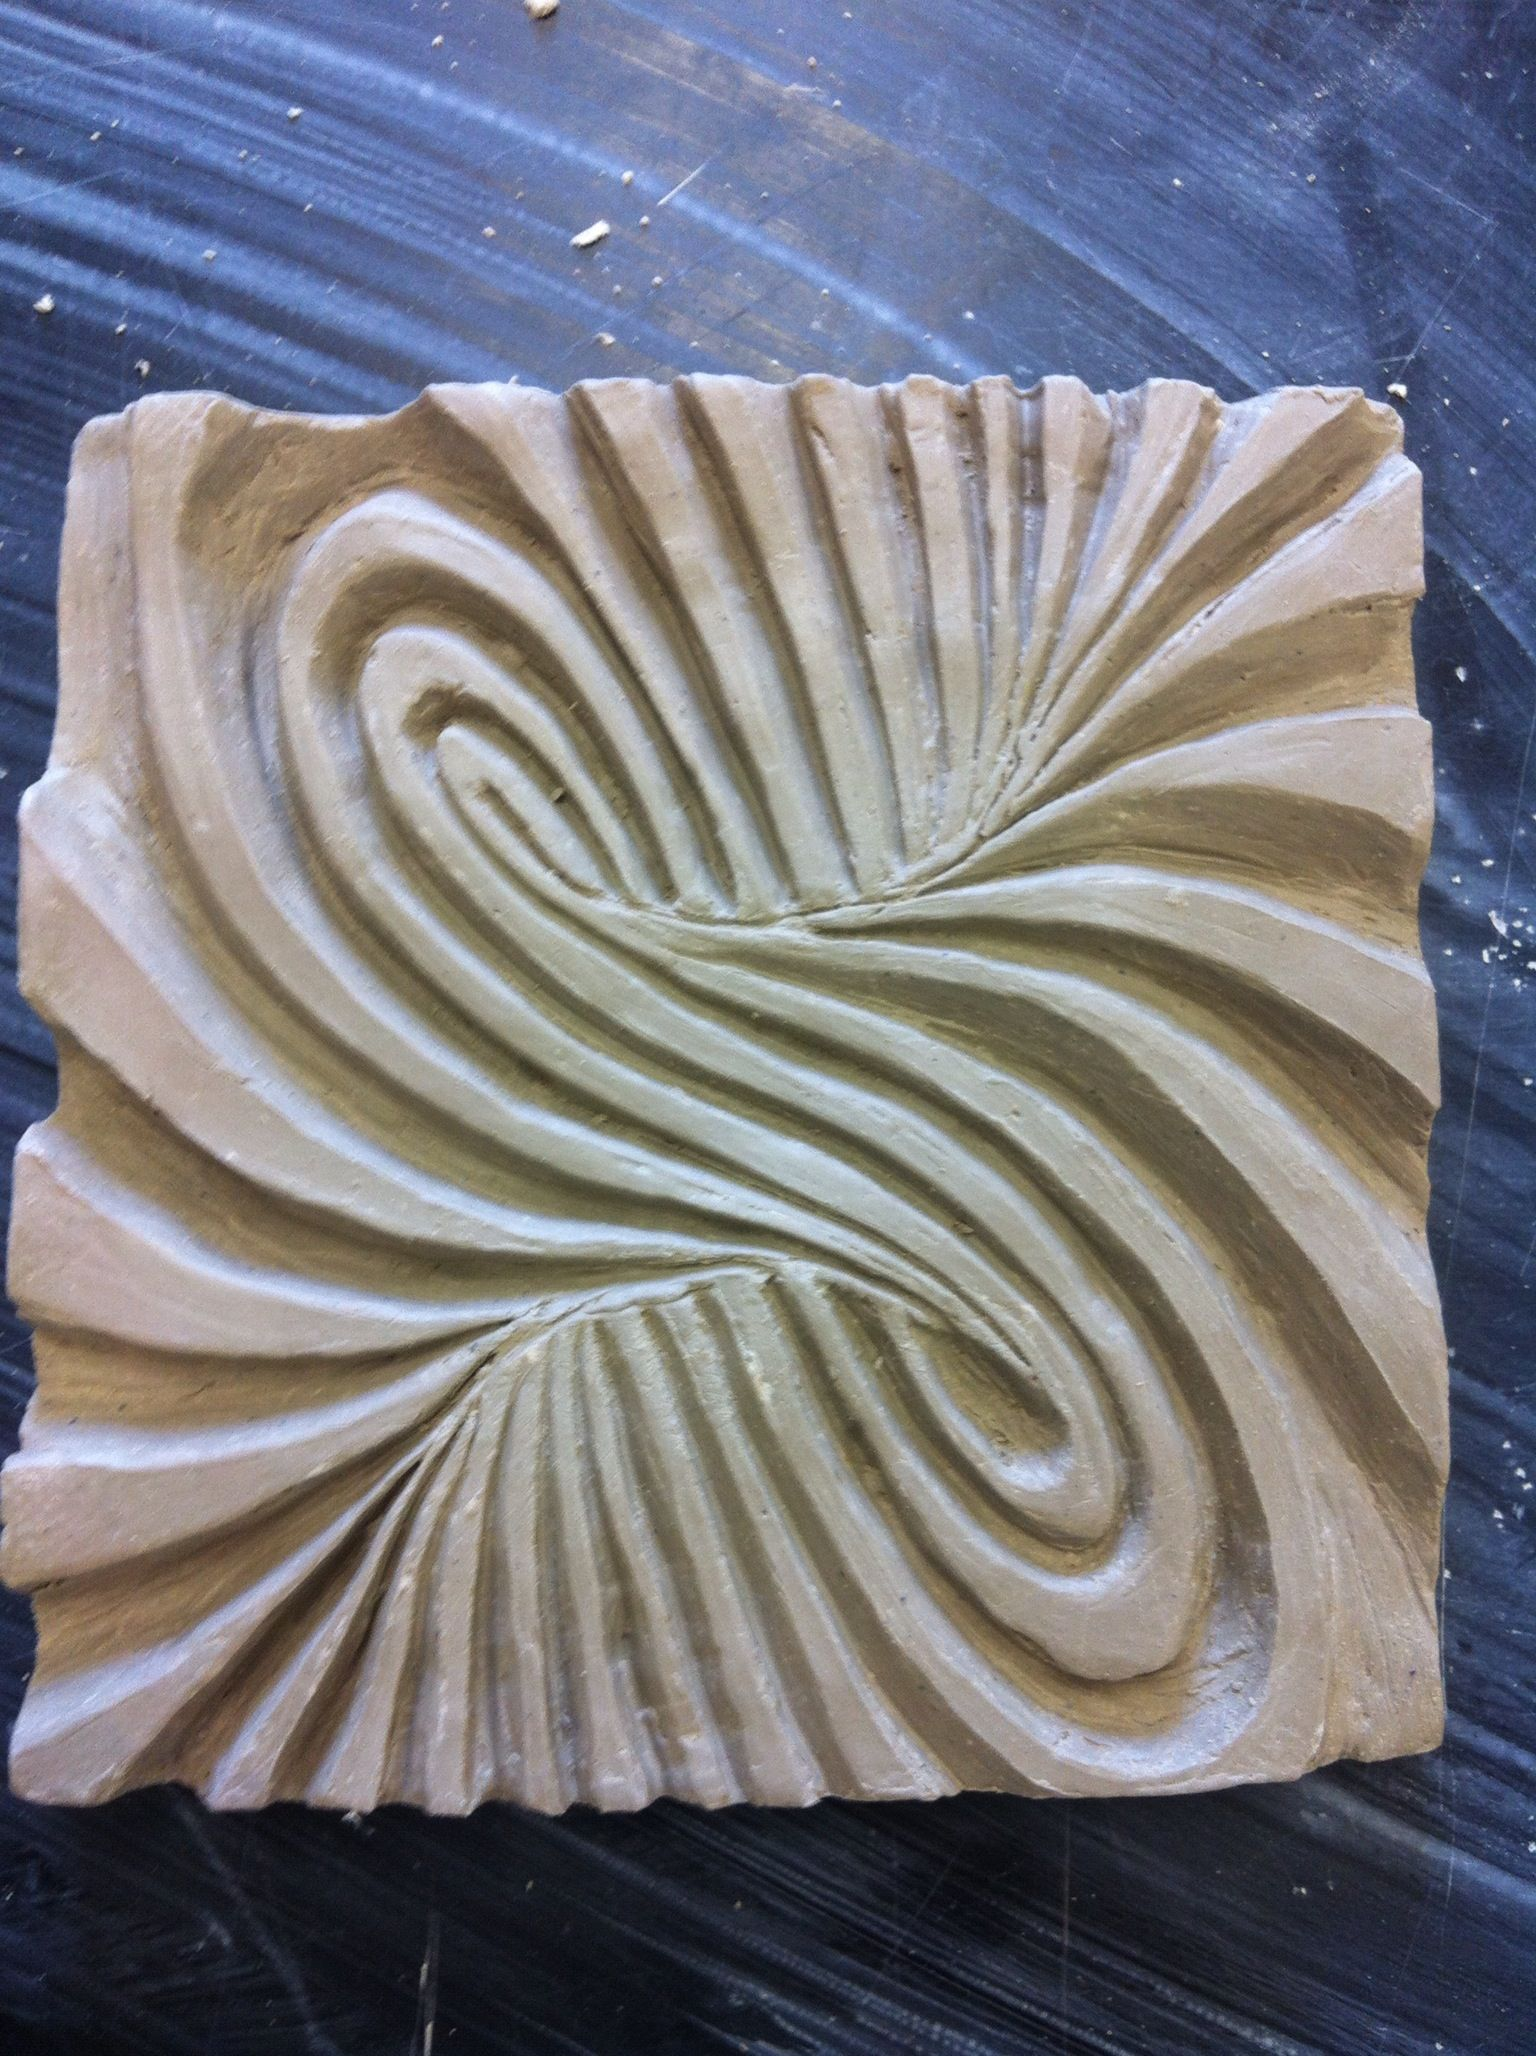 Ceramic tile relief carving this is complex but the